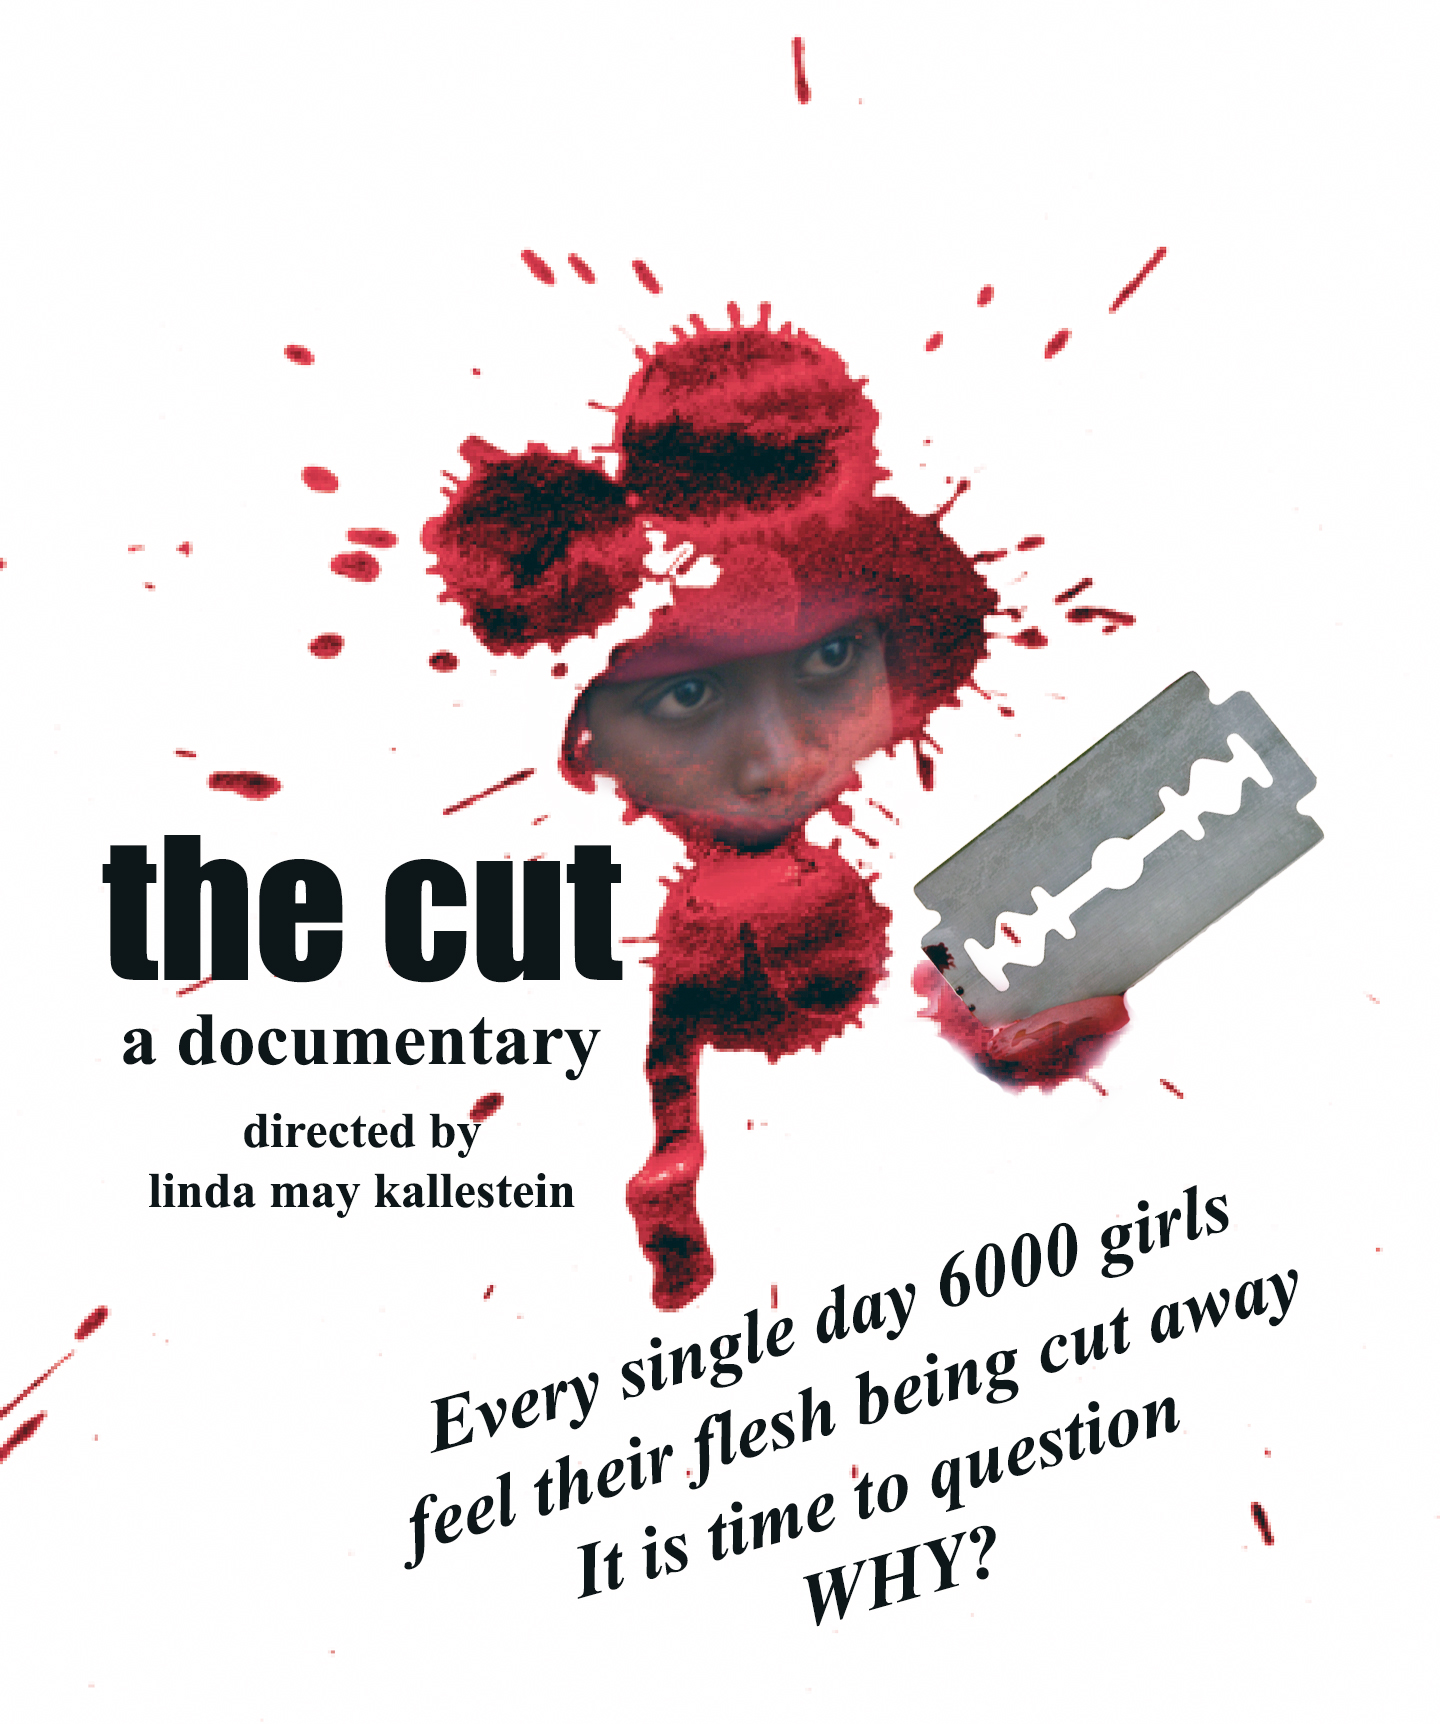 The Cut (documentary)